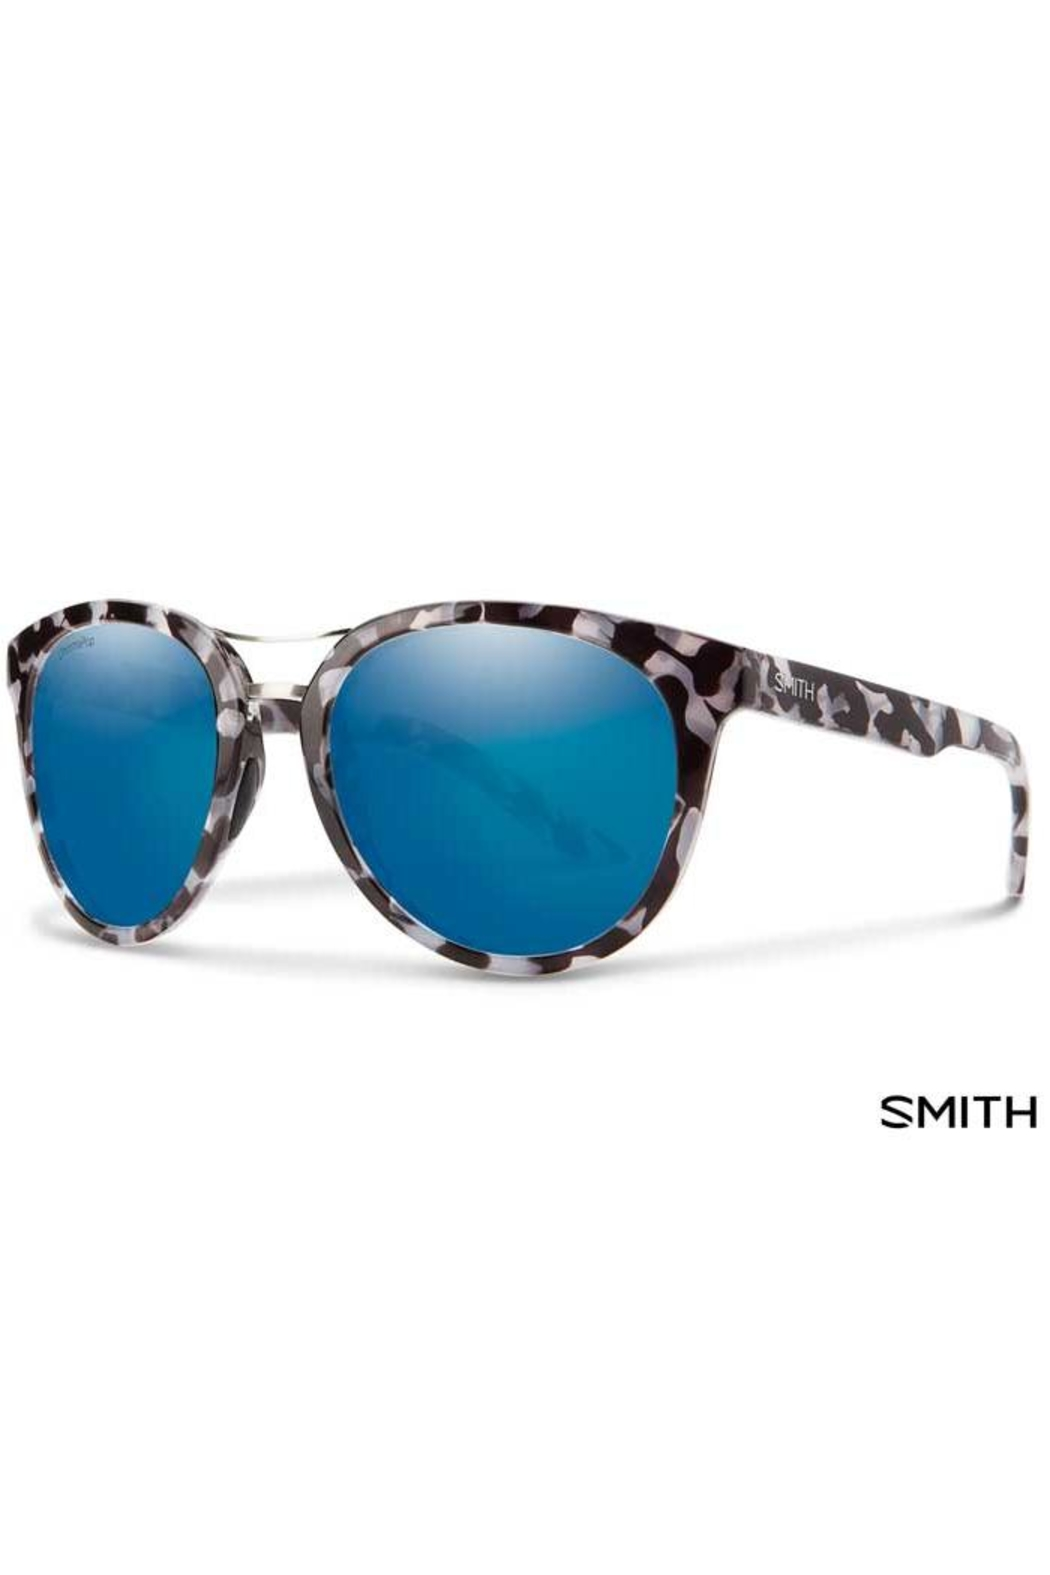 1cd0c25a5a Smith Optics Bridgetown Sunglasses from Alabama by Adrenaline ...